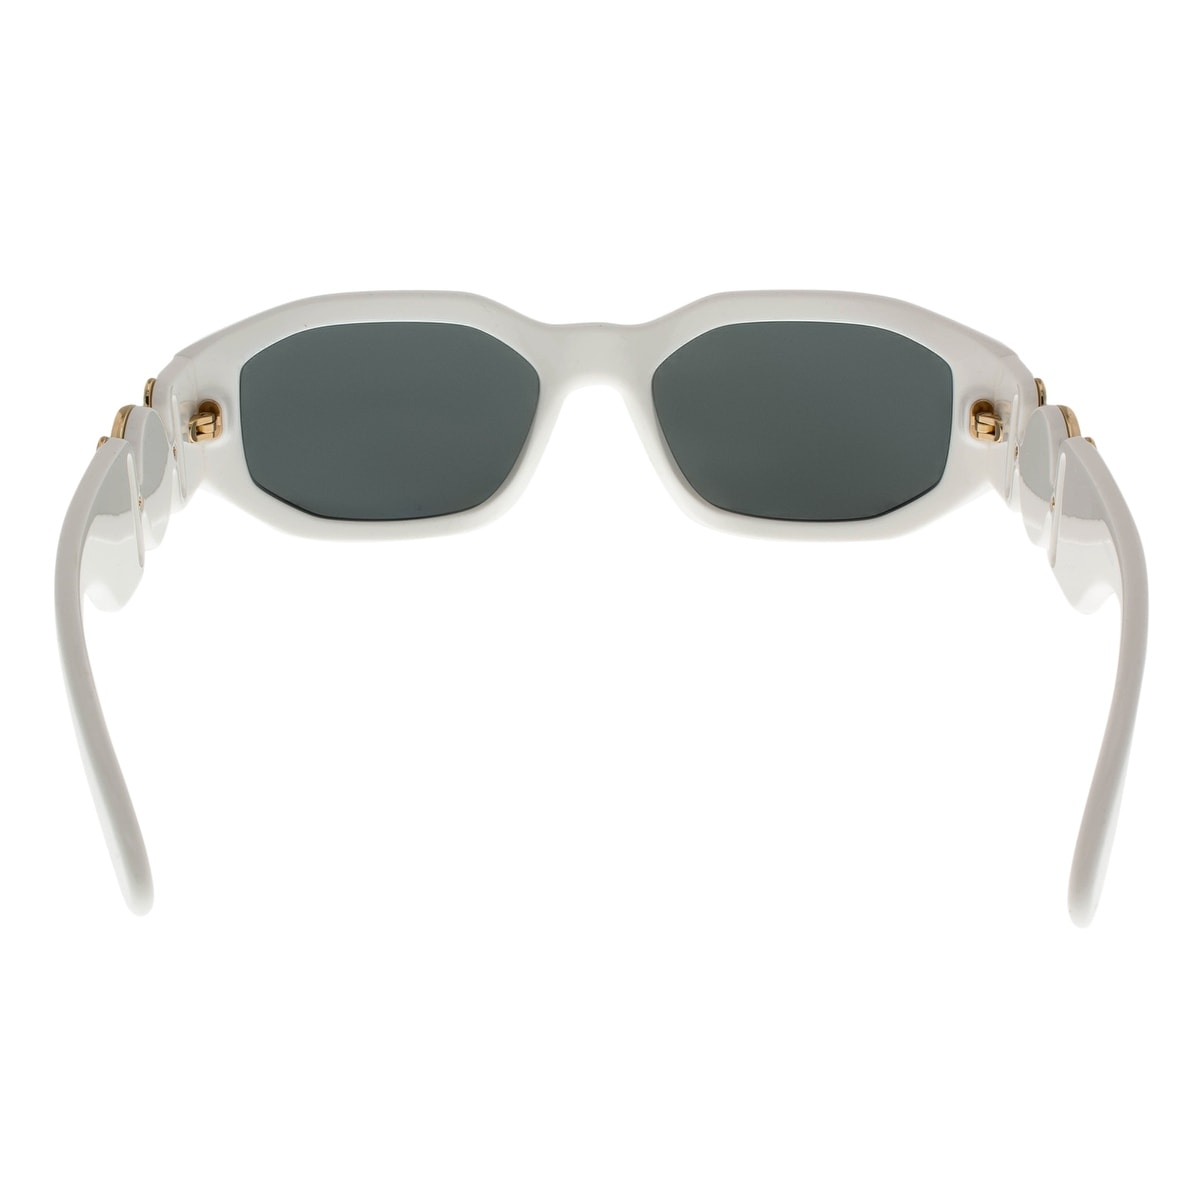 92c6538e079f Shop Versace VE4361 401/87 White Irregular Sunglasses - 53-18-140 - Free  Shipping Today - Overstock - 26951057